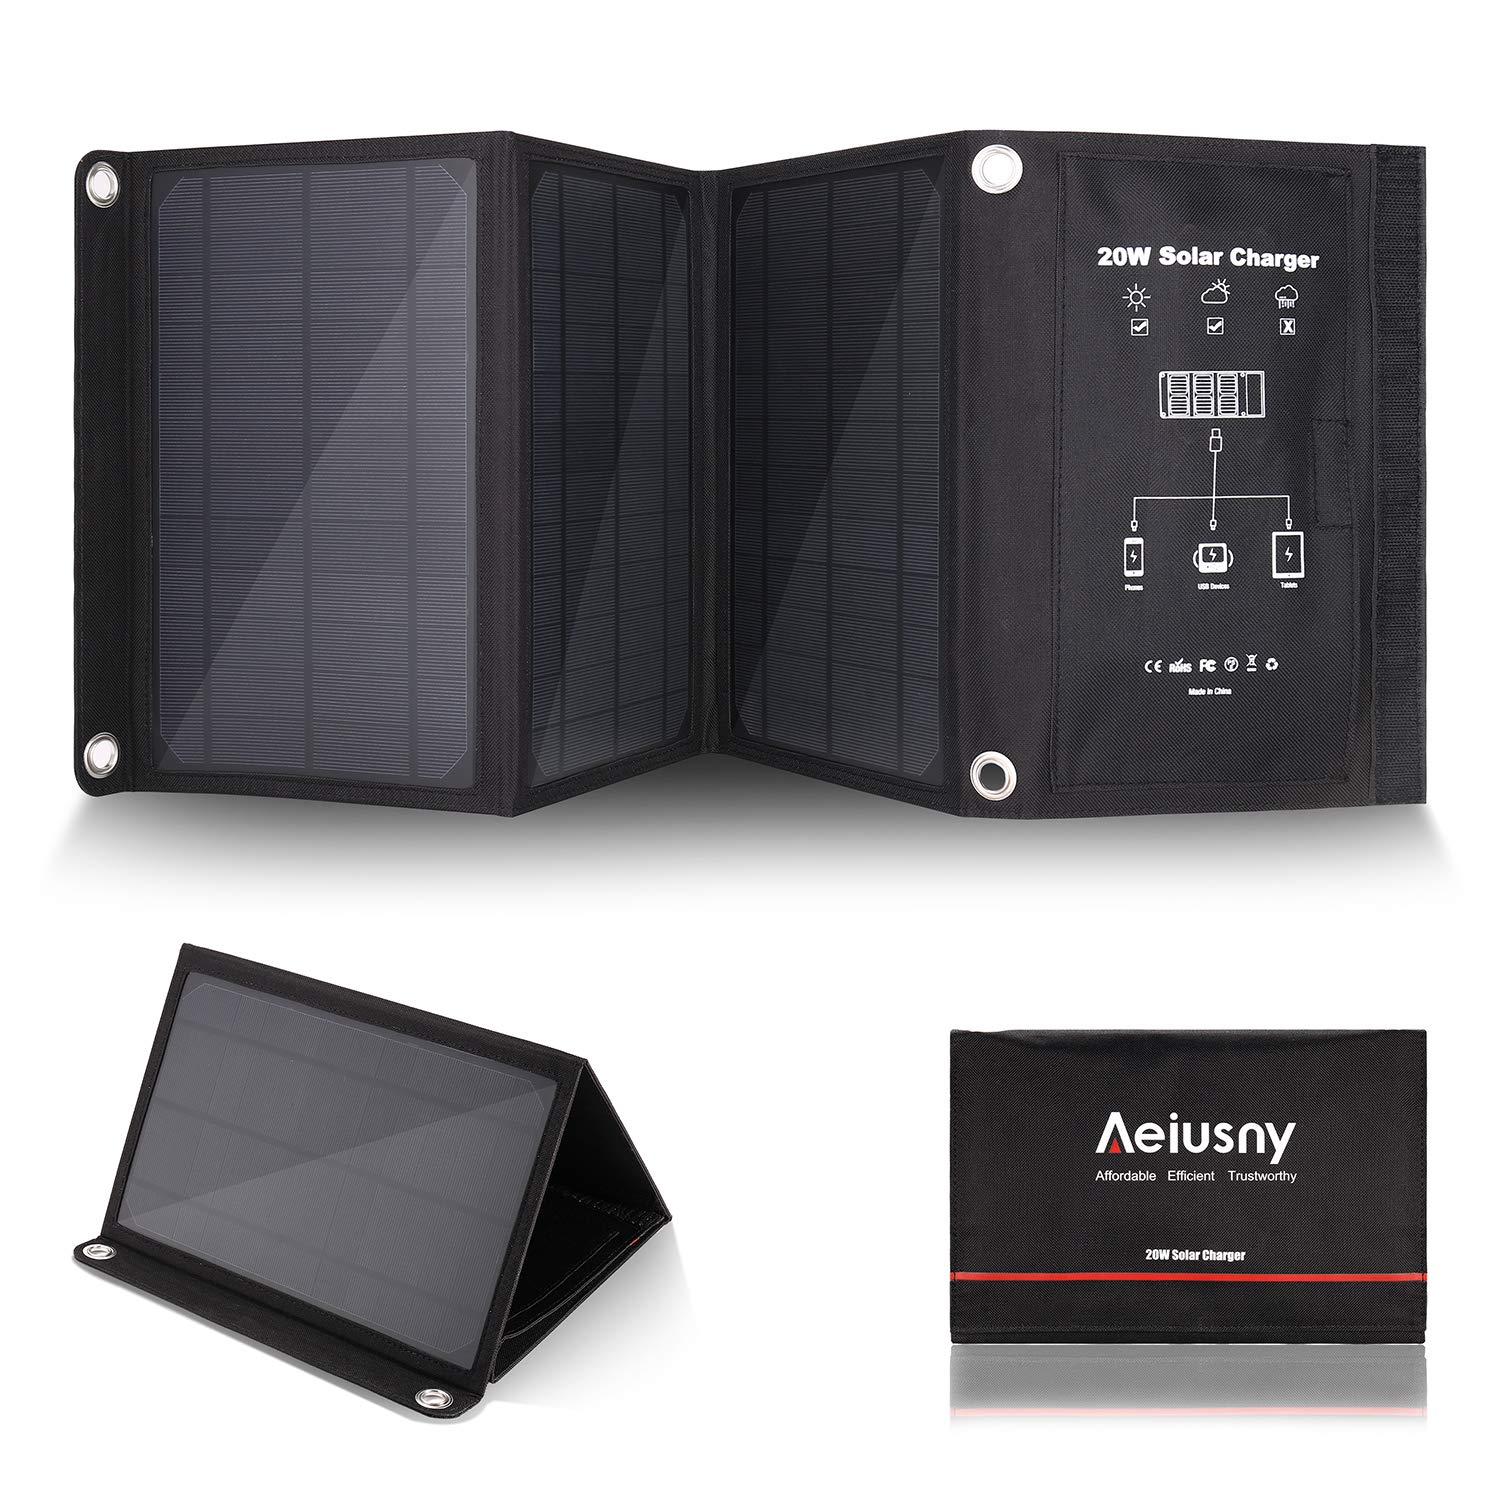 Aeiusny Solar Charger Foldable 20W Solar Panel with 3 USB Ports Waterproof Camping Travel for iPhone Xs XR X 8 7 Plus, iPad, Galaxy S9 S8, Nexus, LG, Any USB Devices, and More